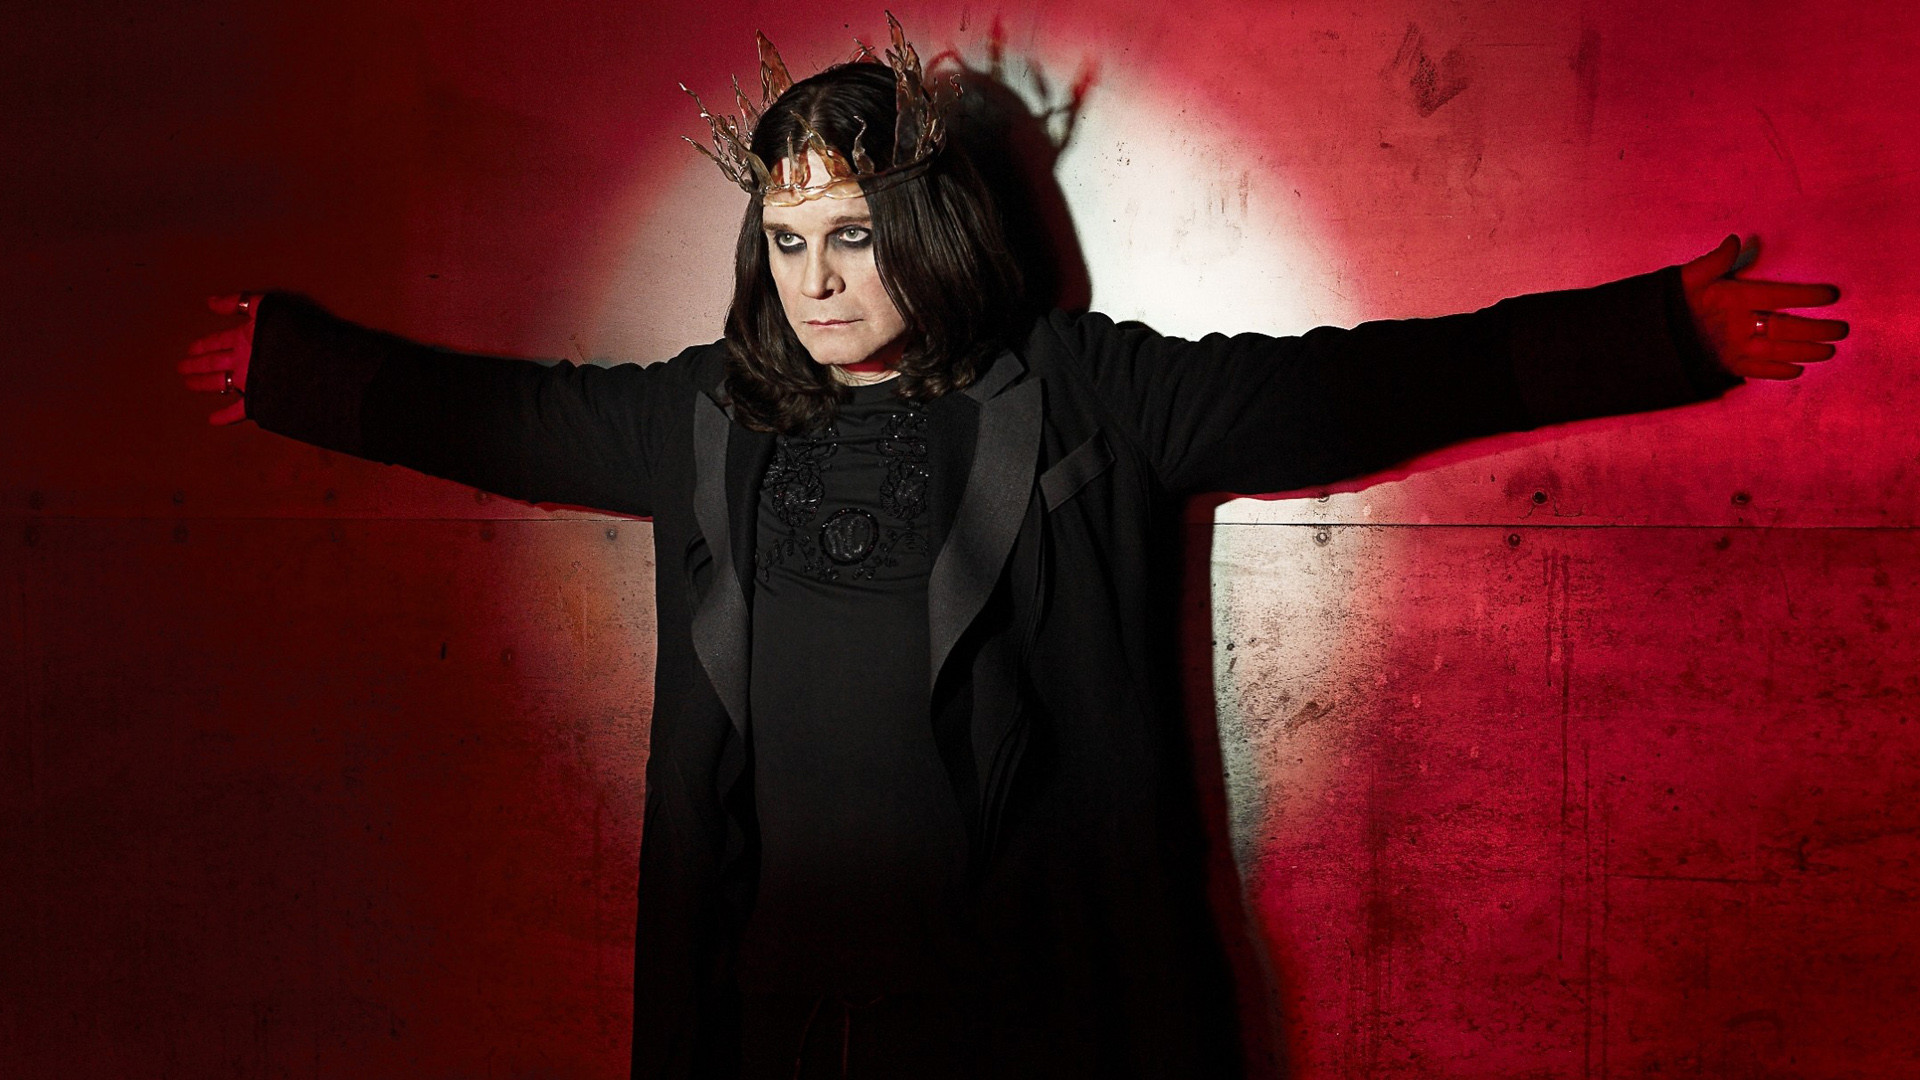 Ozzy Osbourne Pictures Wallpaper 76 Images